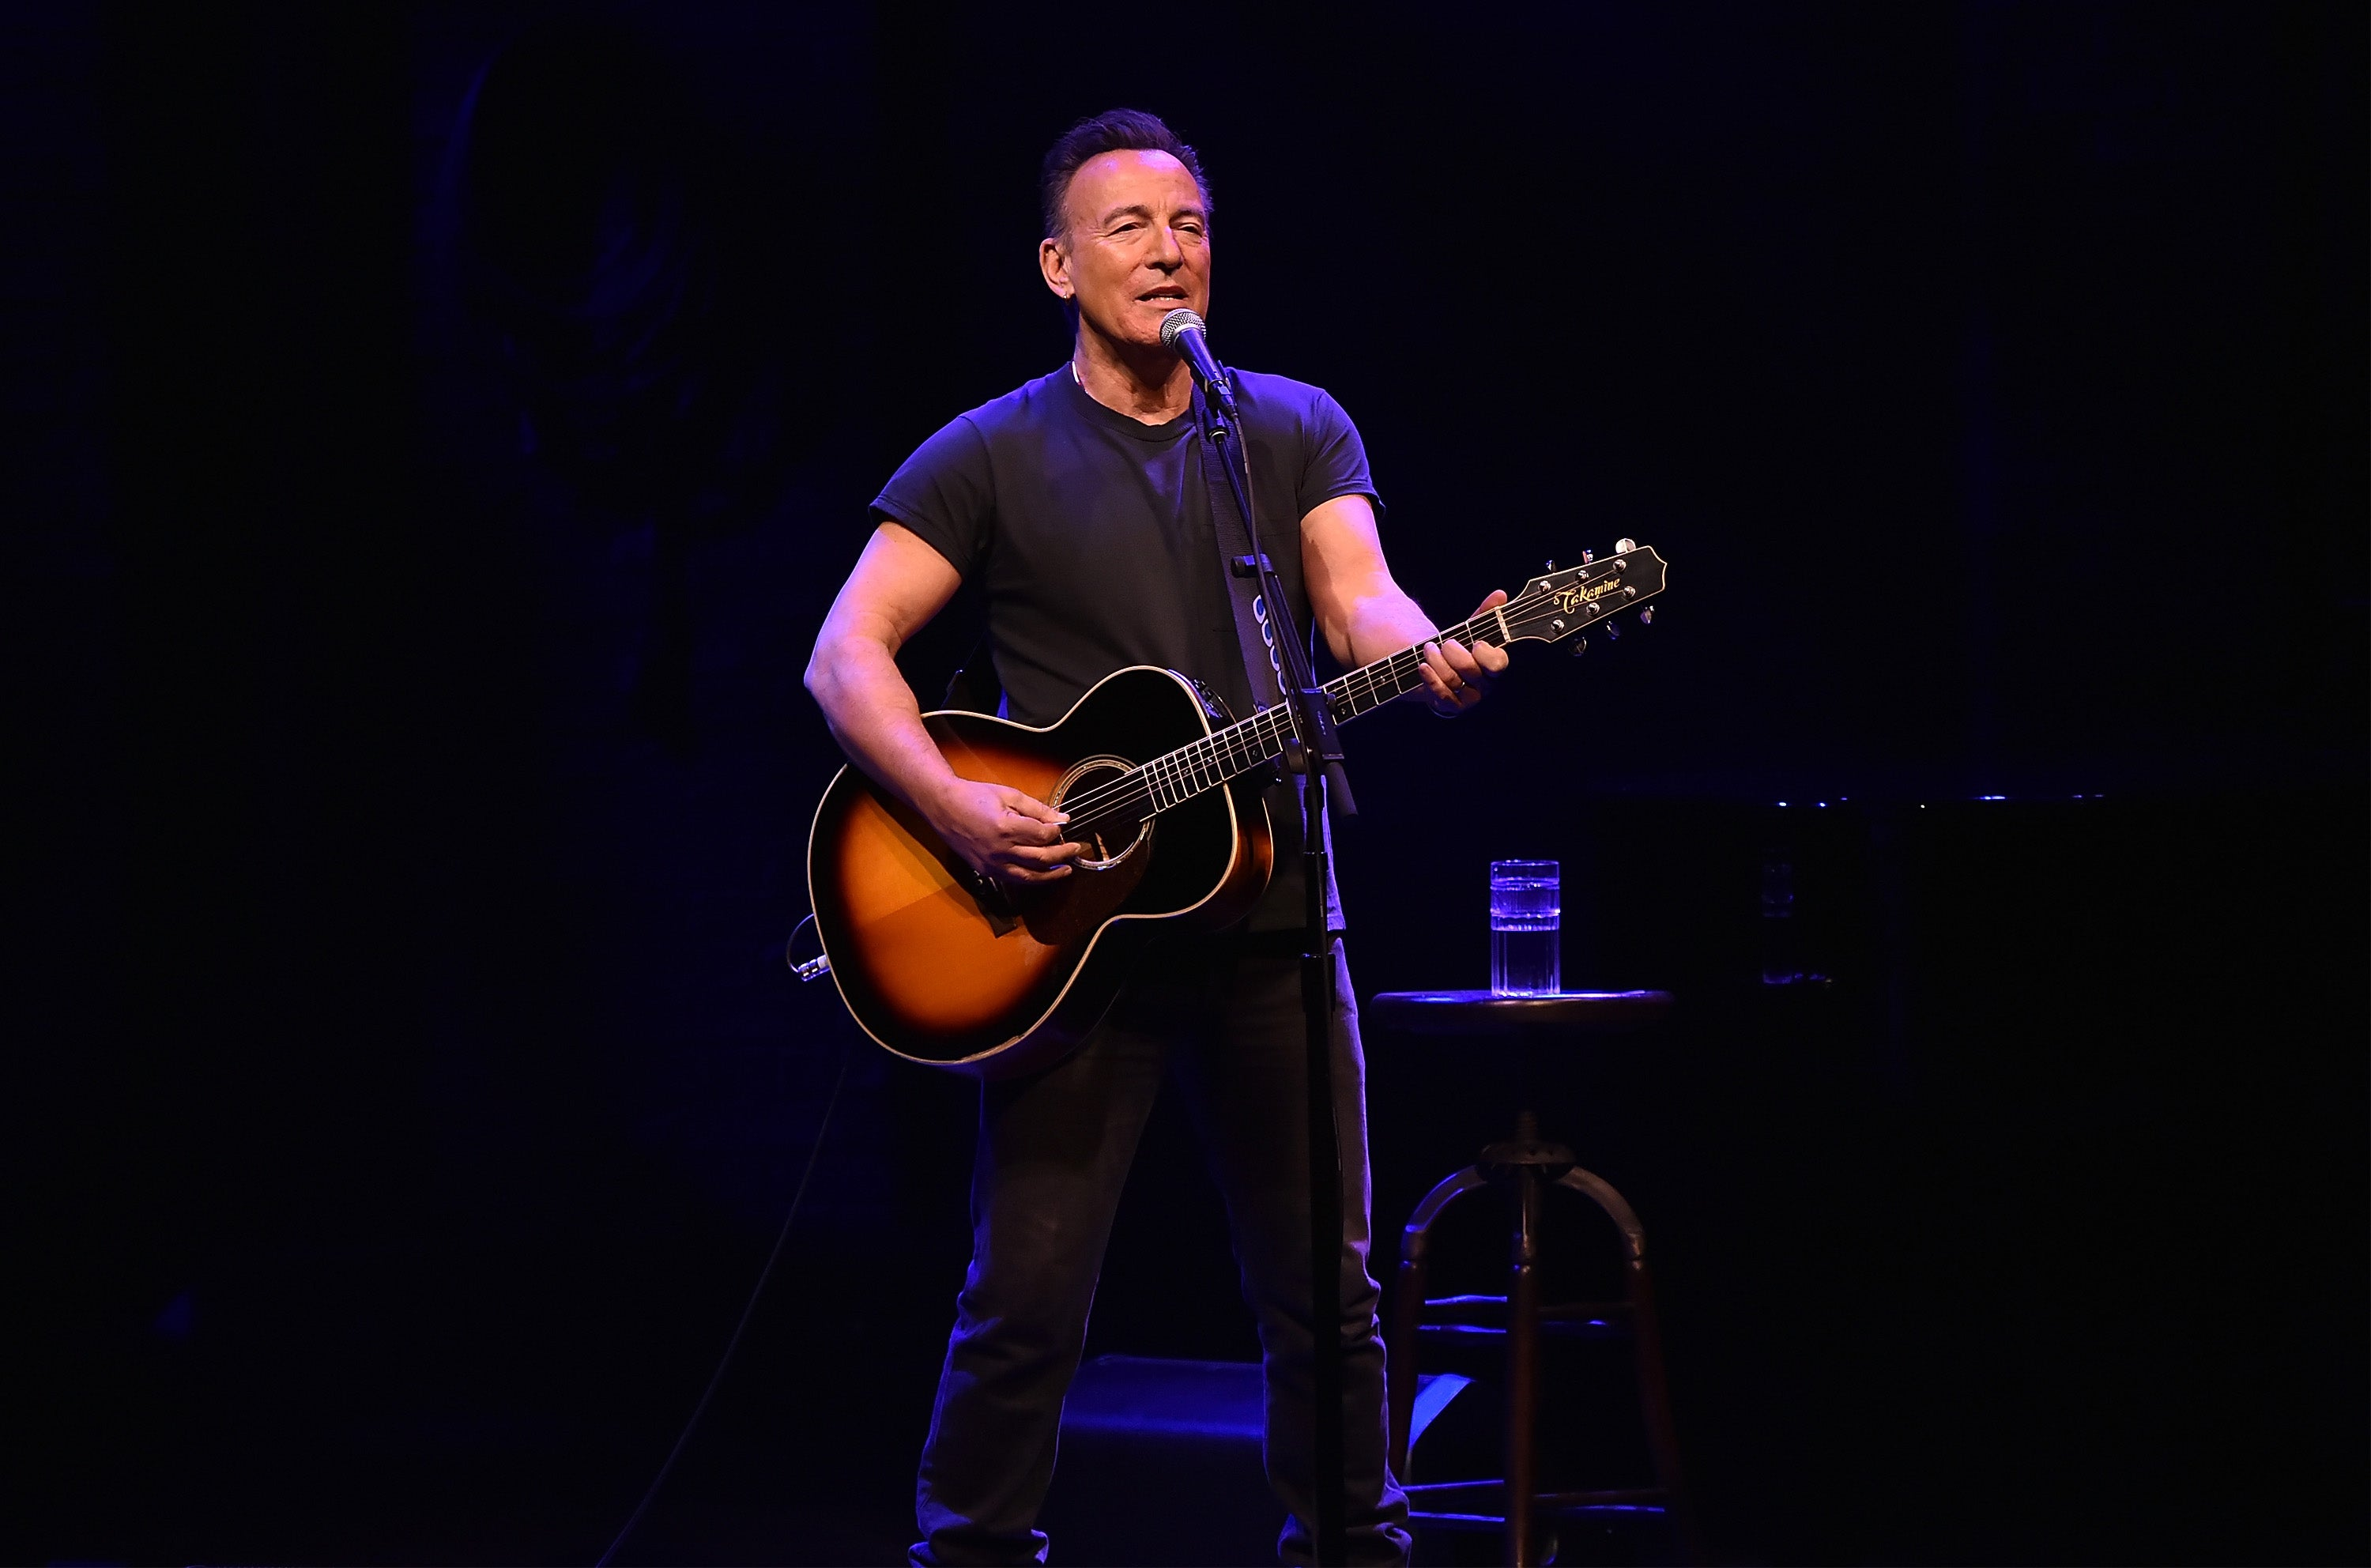 Bruce Springsteen, wearing all black, plays guitar and sings.